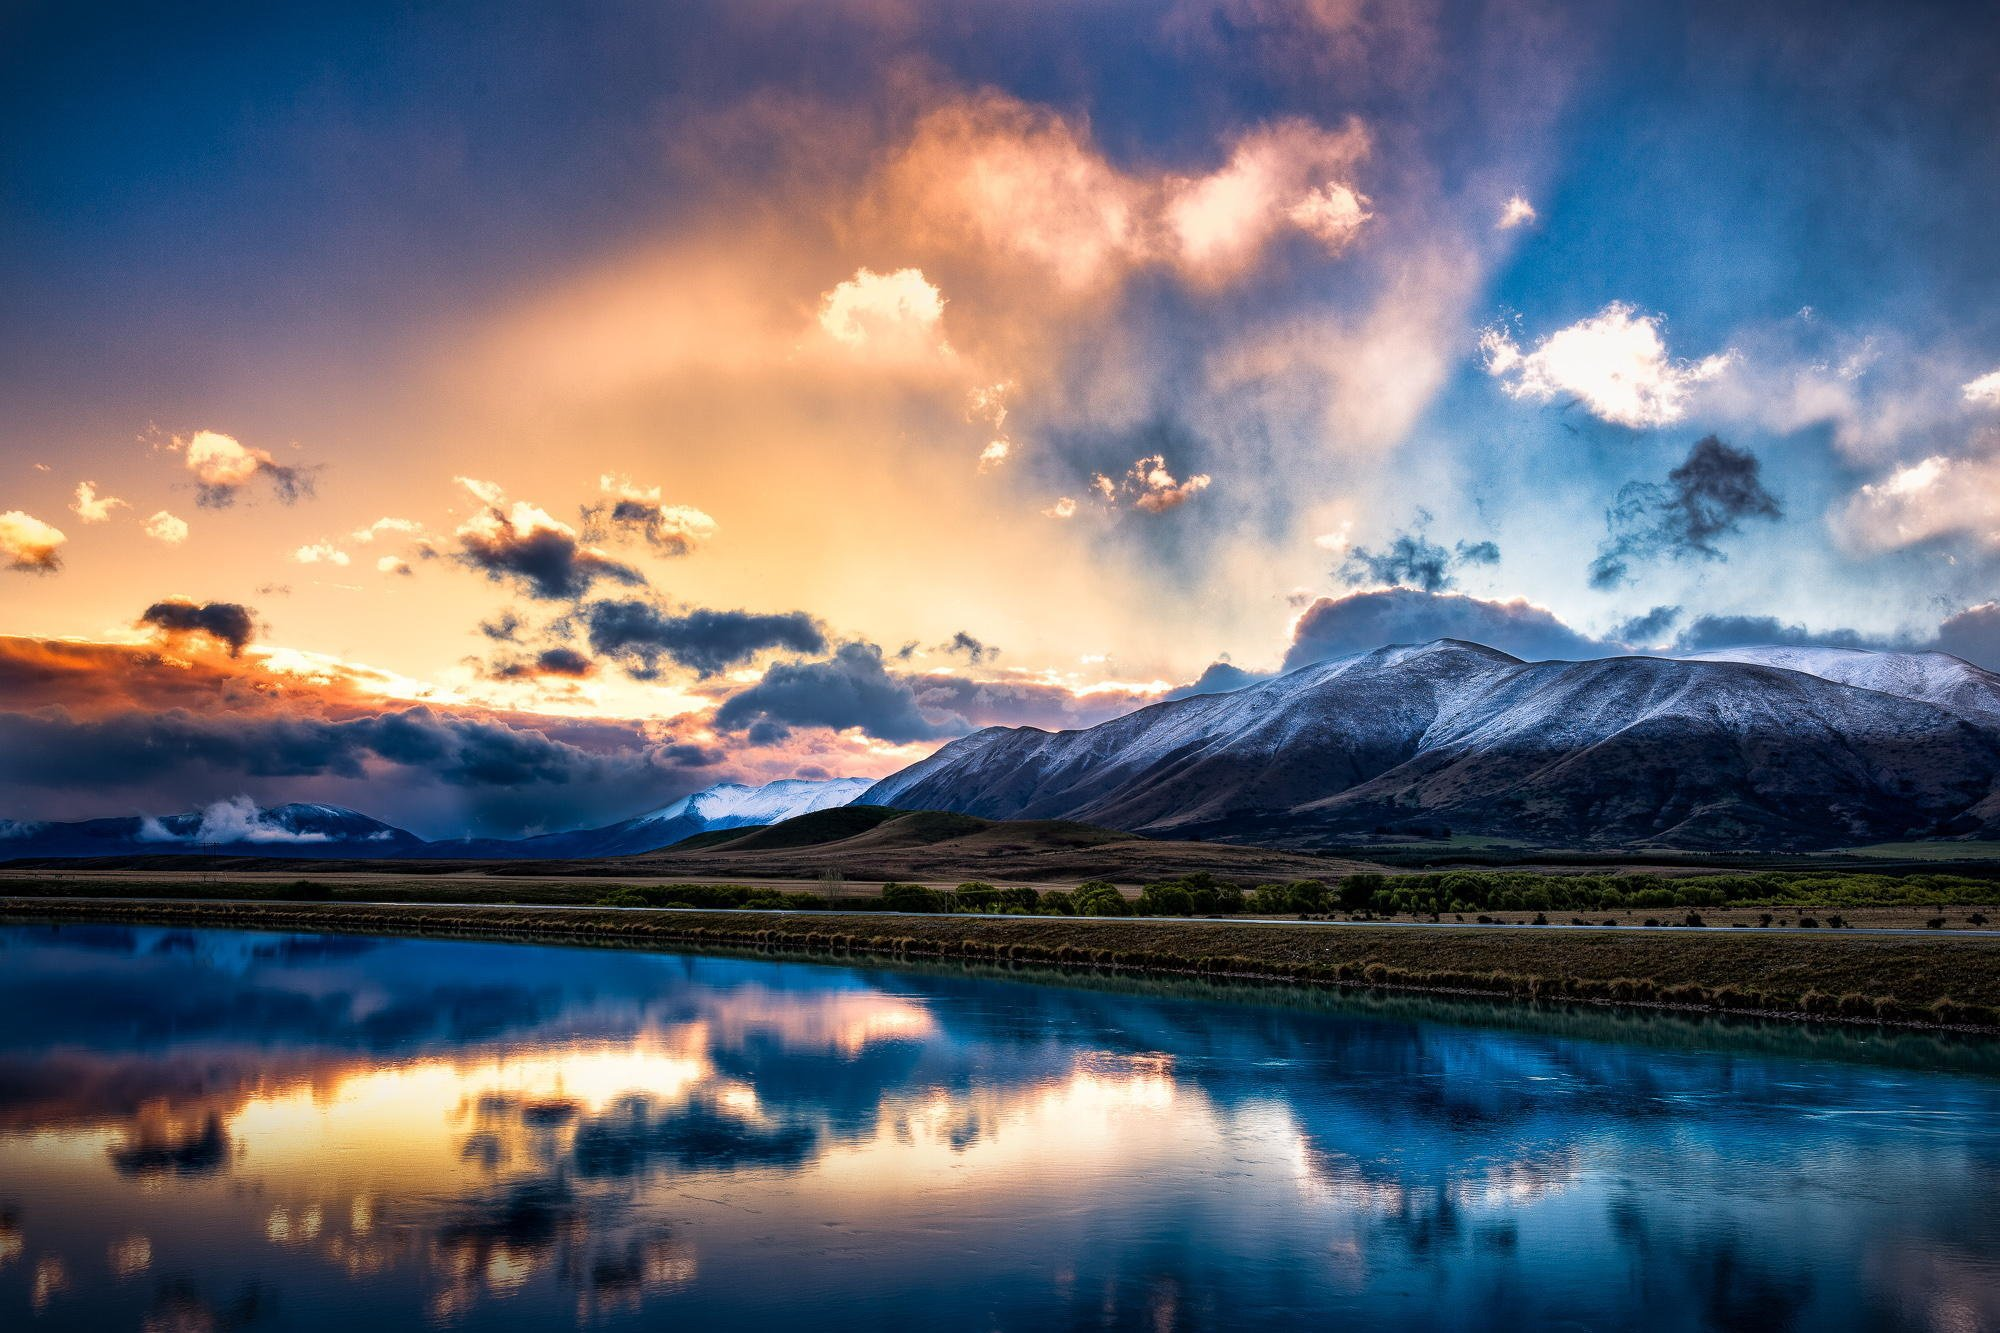 New Zealand South Island Mountains Snow Lake Reflection Sky Clouds Sunrise Sunset Wallpaper